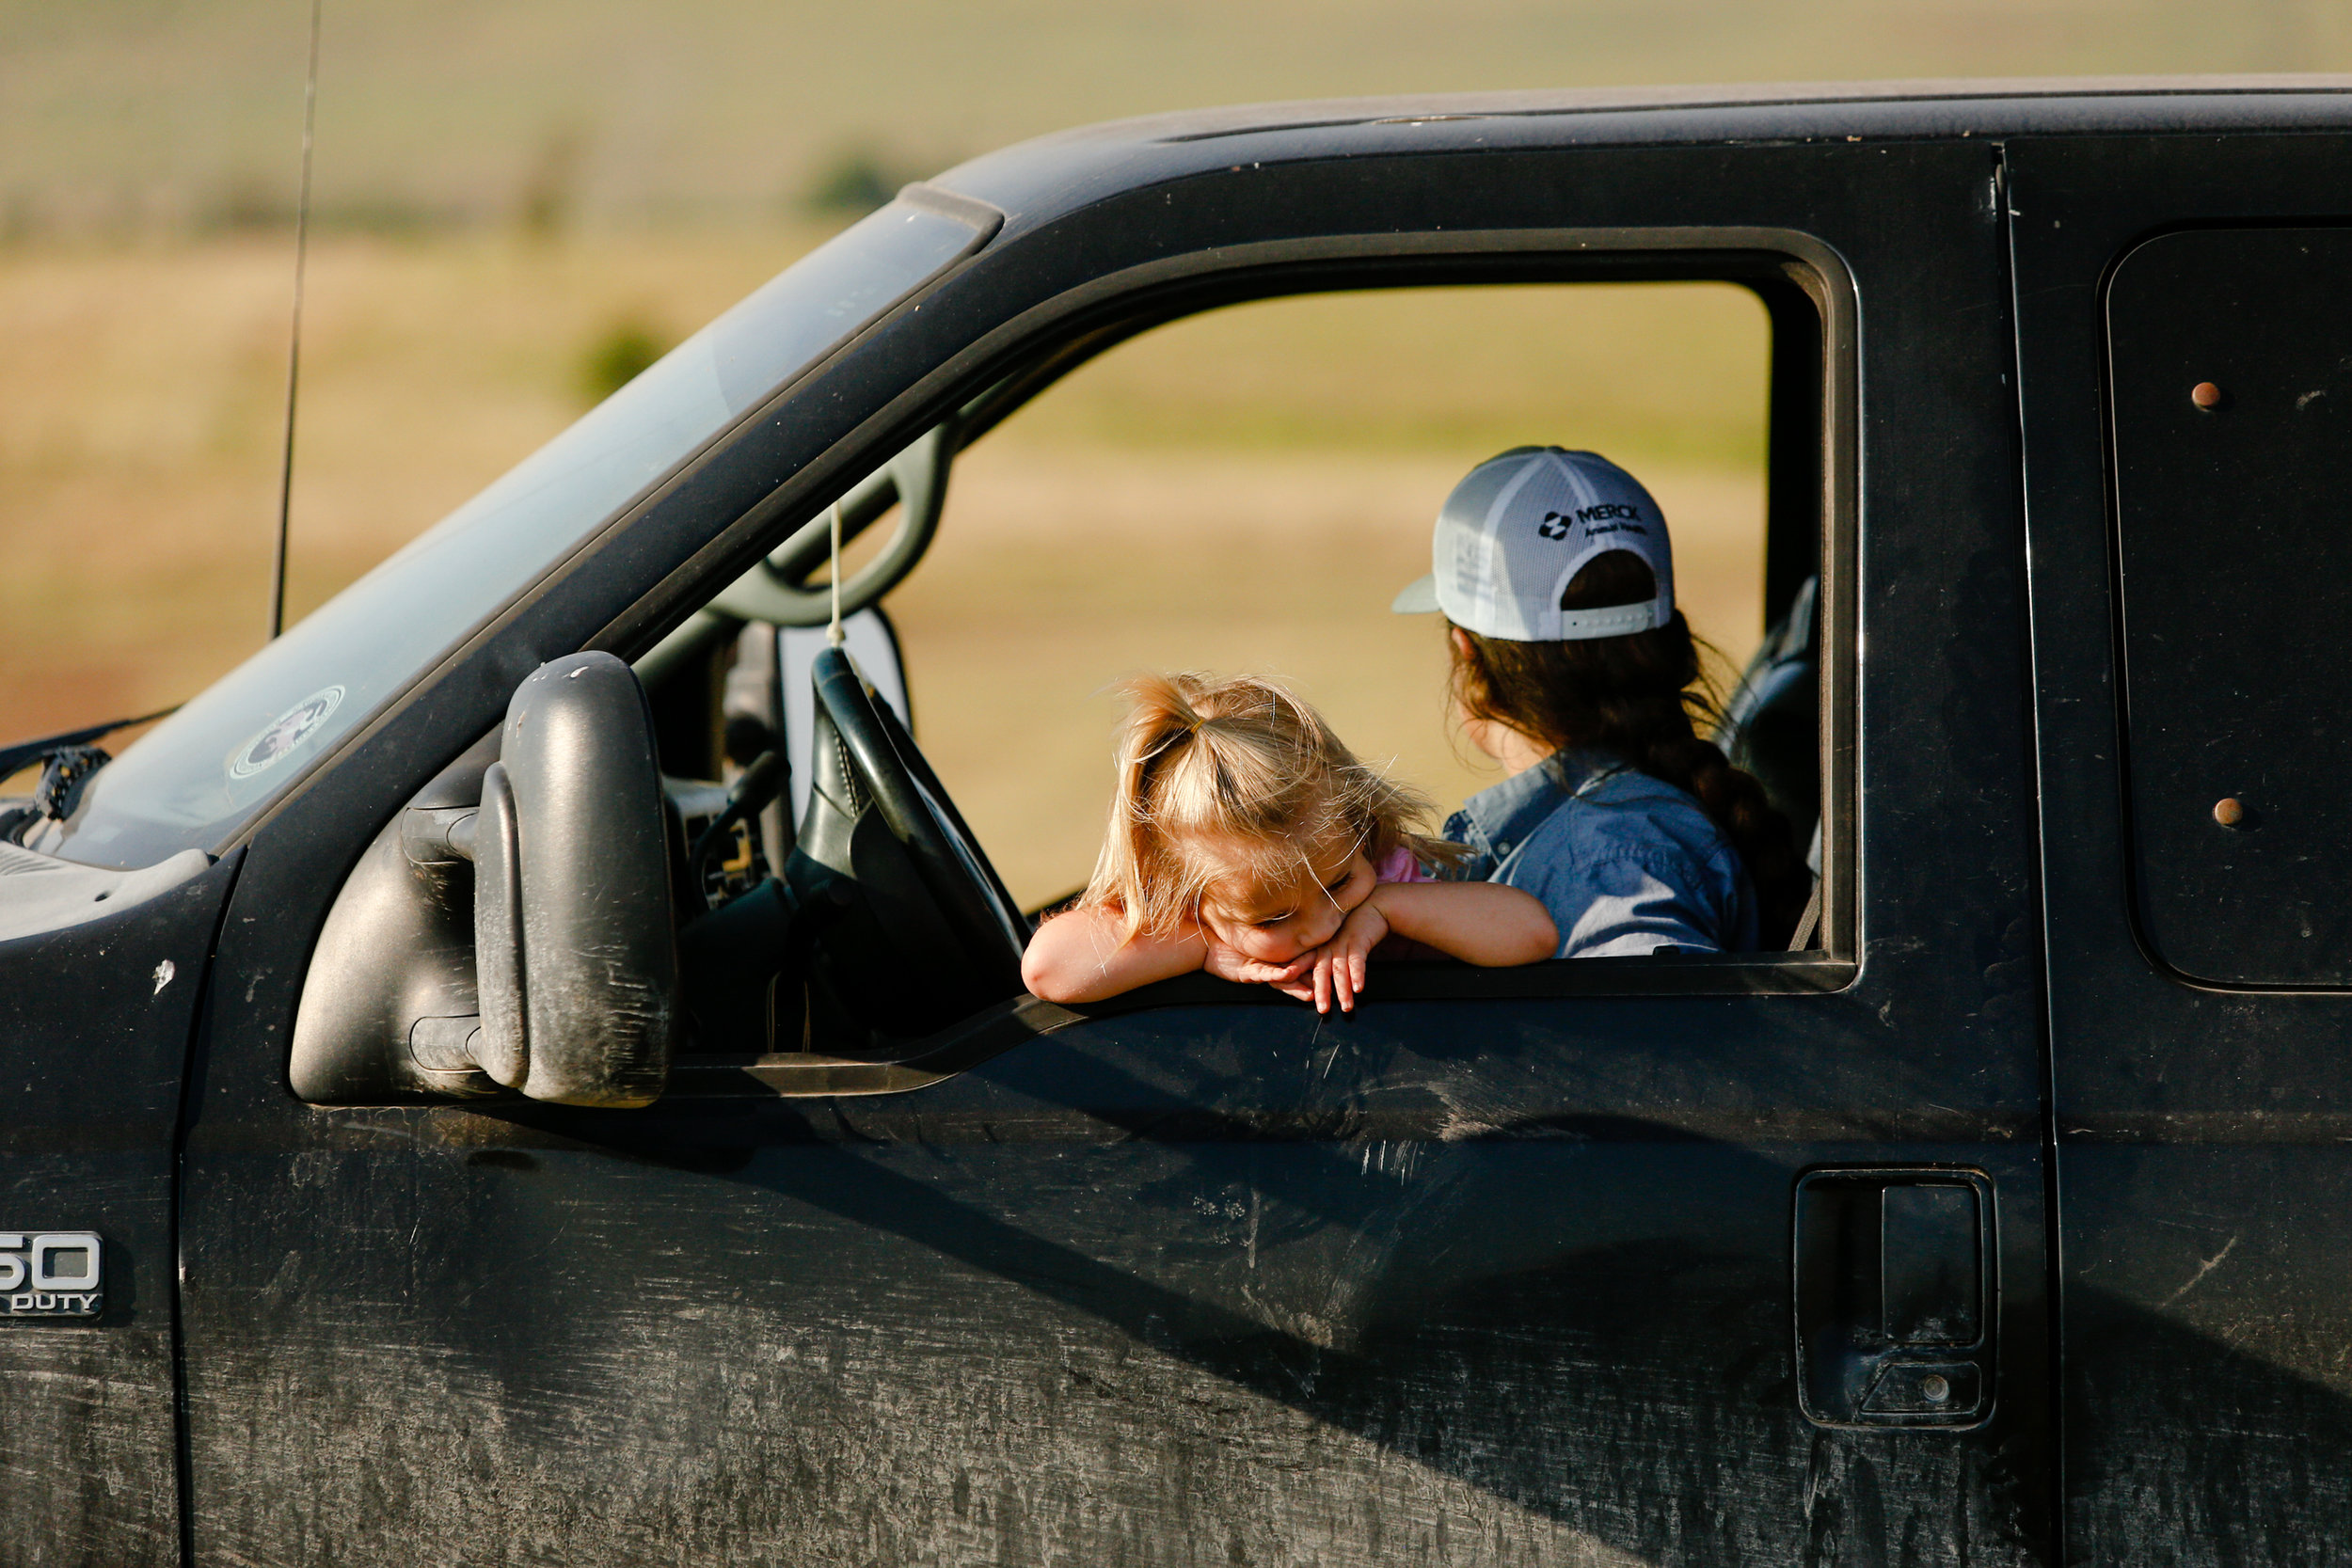 2-year-old Sonora Stierwalt sits in the lap of her mother, Jenna, and rests on the window as they drive from pasture to pasture, checking on cattle at Stierwalt Ranch.